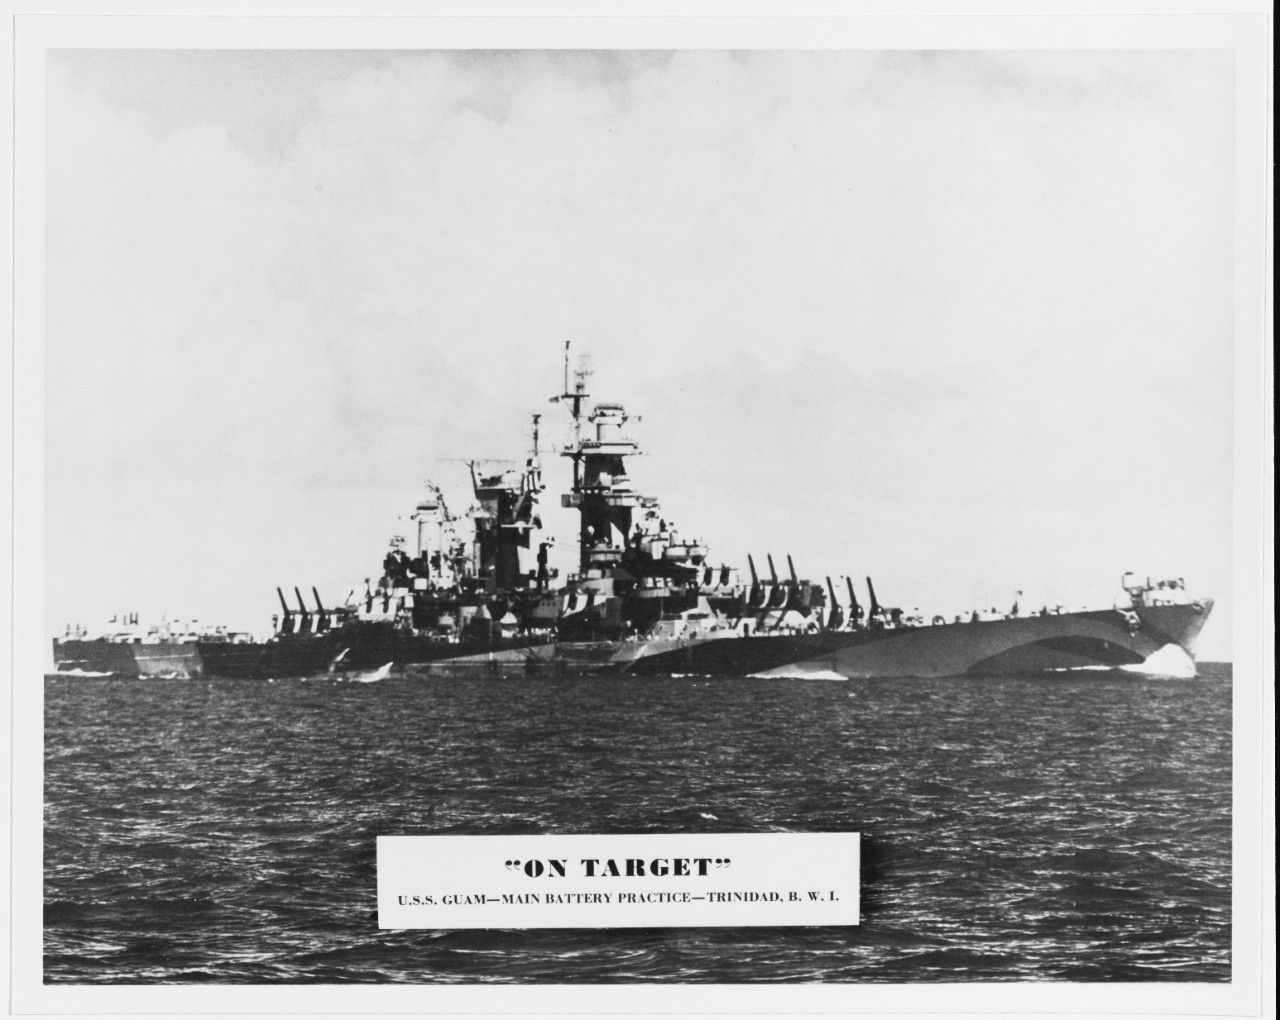 """""""USS Guam (CB-2). Halftone photo of the ship conducting main battery gunnery practice during shakedown off Trinidad, November-December 1944. Copied from the ship's wartime cruise book, U.S.S. Guam: Her Story, 1944-1945. U.S. Naval History and Heritage Command Photograph."""" (NHHC: NH 90736)"""